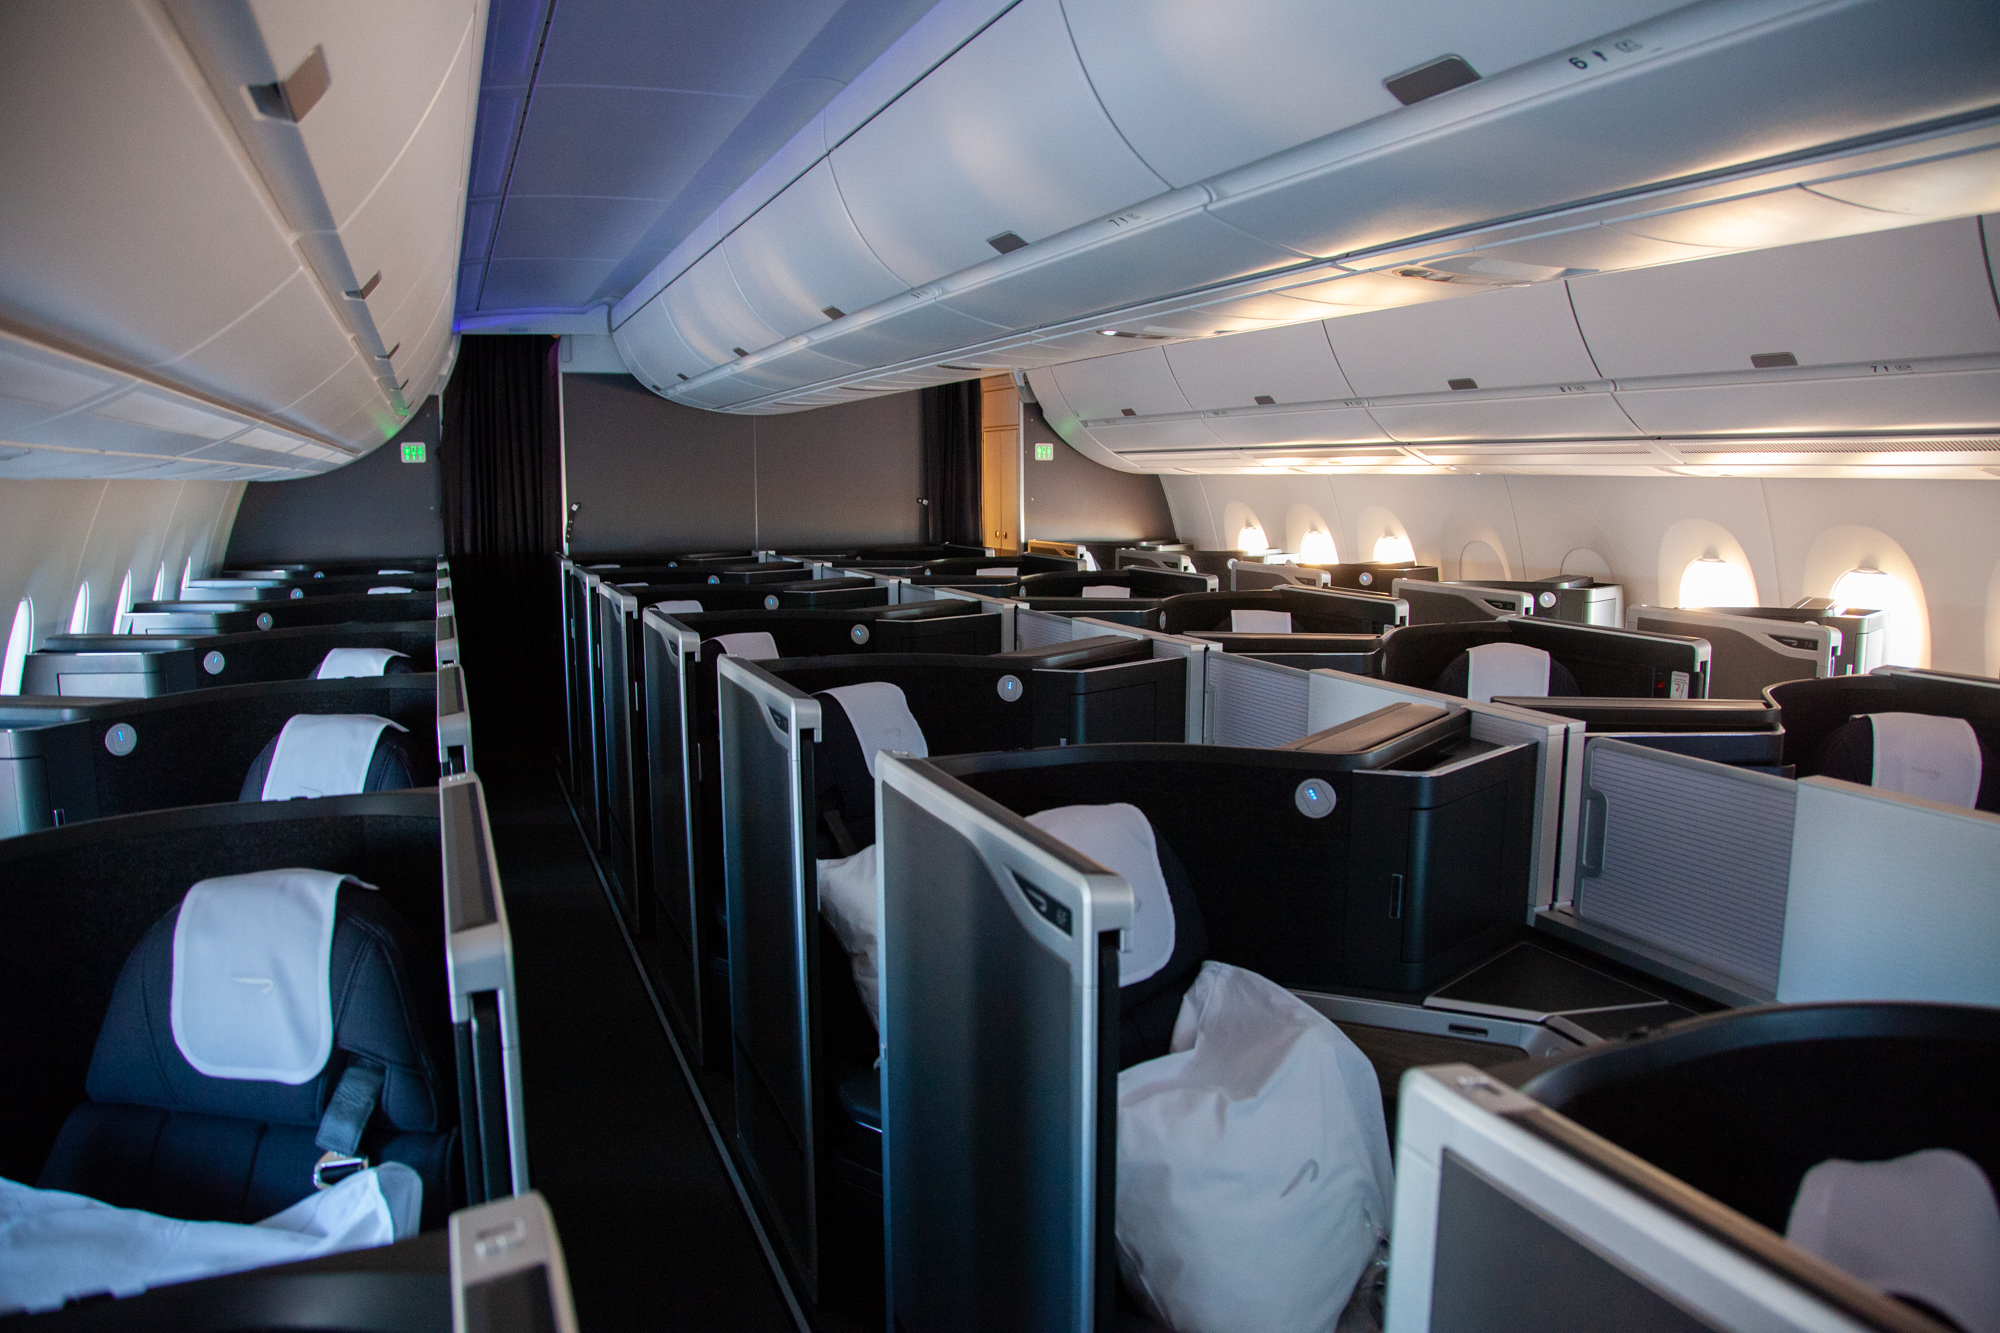 British Airways A350 35K empty business class cabin how network has fared this autumn